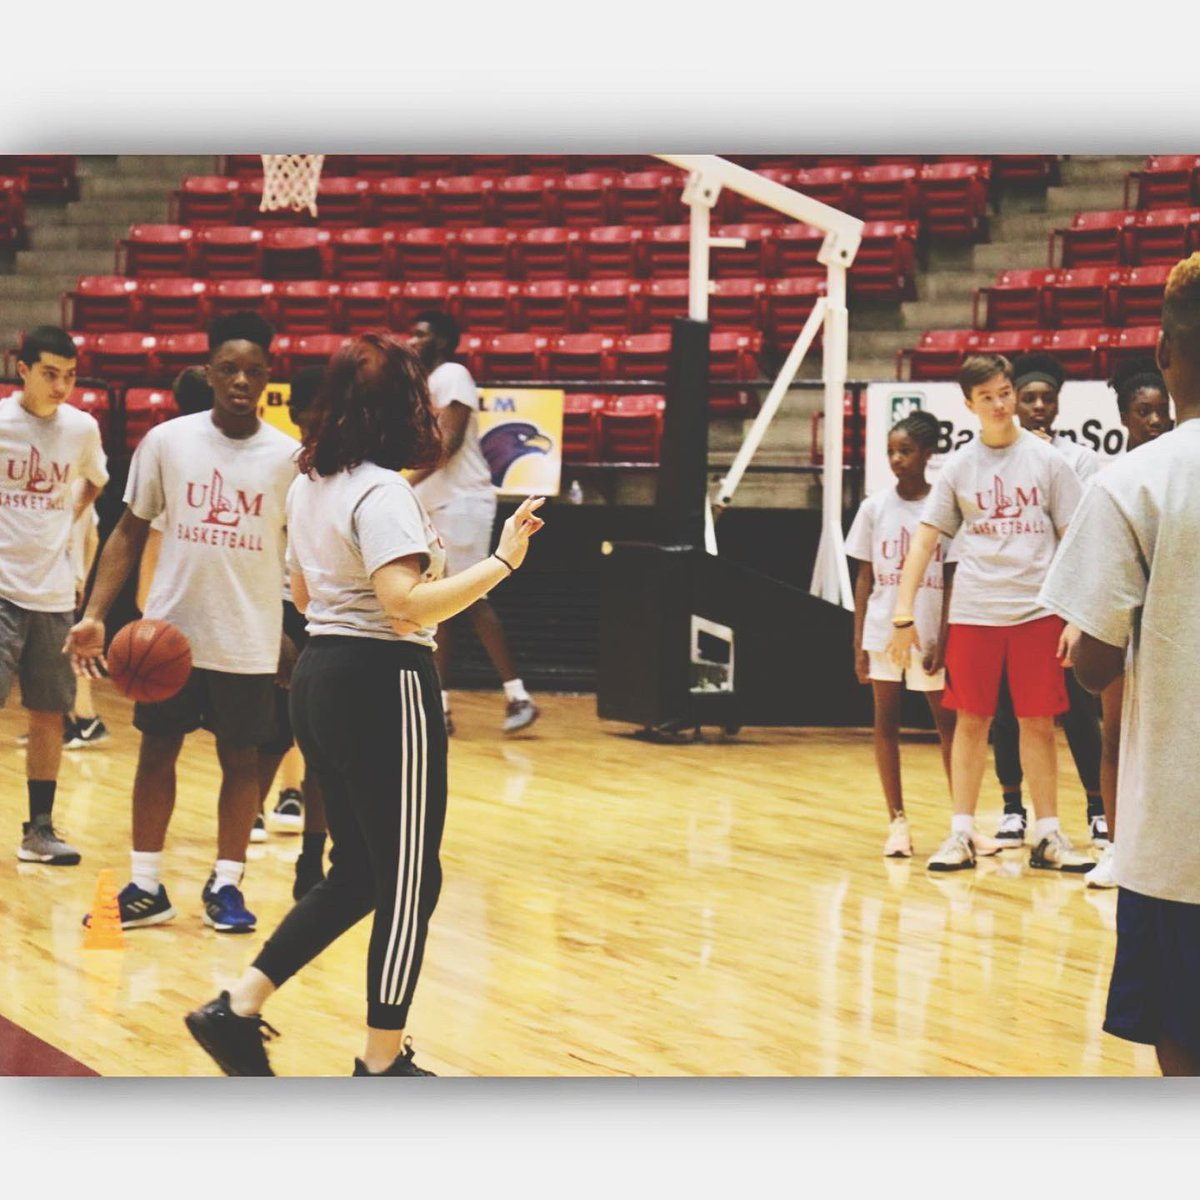 Kids camp was . Hope to see you at the next one! #ULMMBB #TakeFlight <br>http://pic.twitter.com/6r2waNV8J1